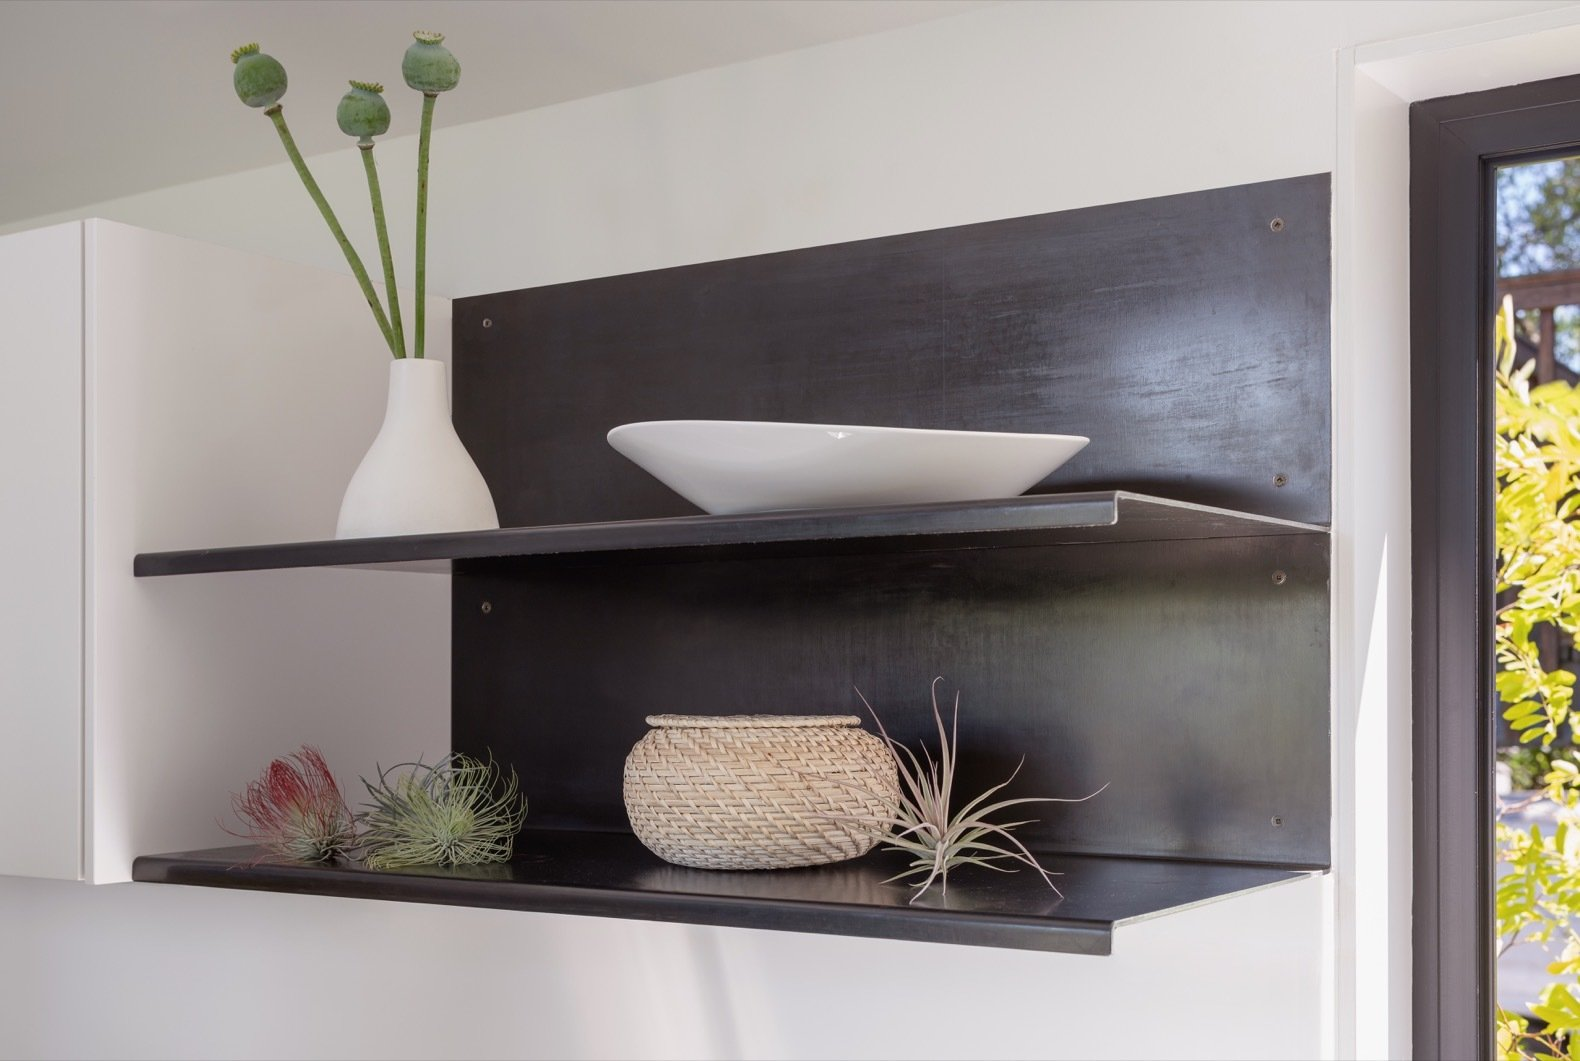 Solar Studio raw carbon steel shelving